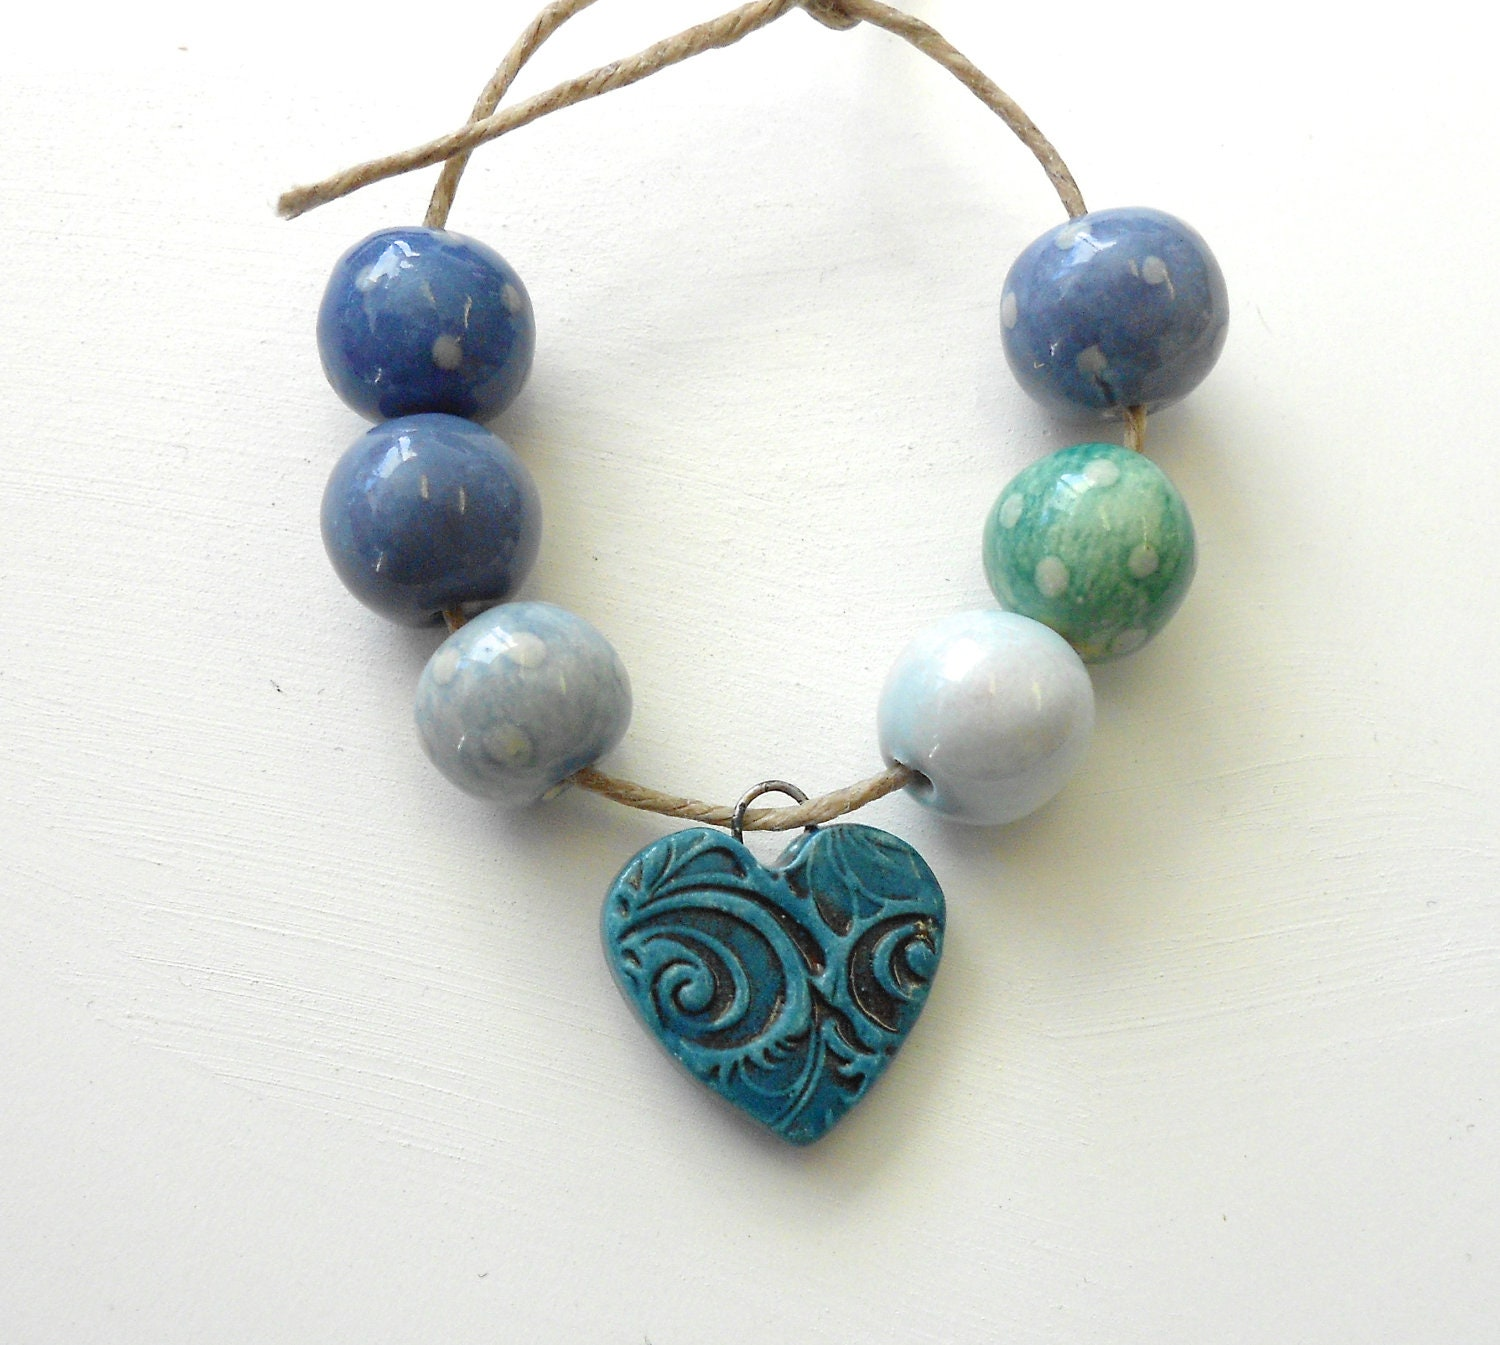 reserved for handmade ceramic bead set by